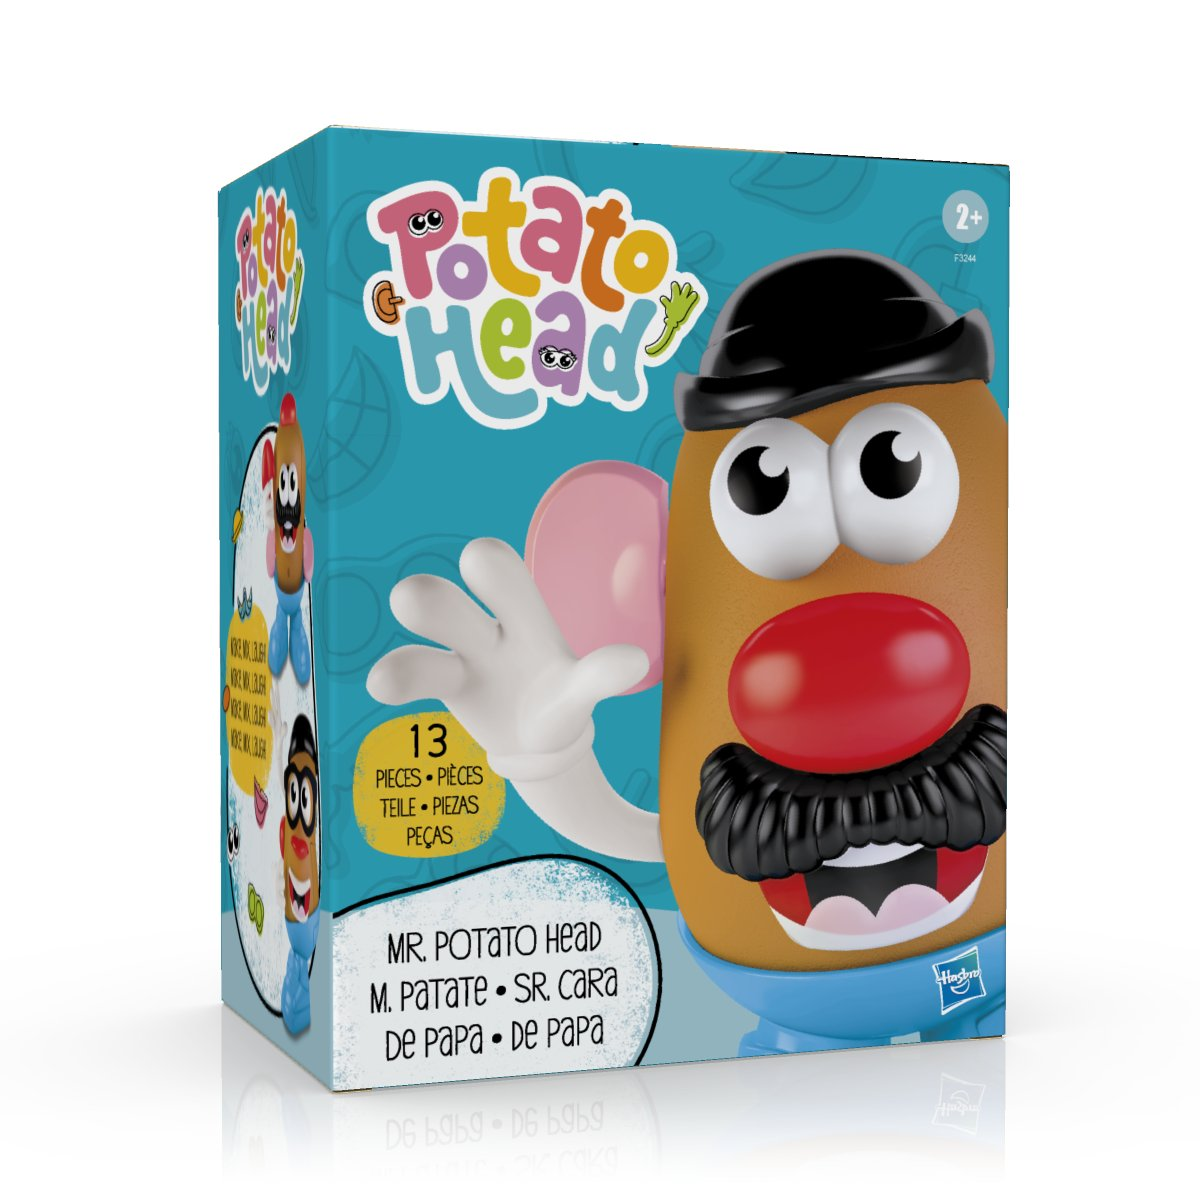 Hold that Tot – your main spud, MR. POTATO HEAD isn't going anywhere! While it was announced today that the POTATO HEAD brand name & logo are dropping the 'MR.' I yam proud to confirm that MR. & MRS. POTATO HEAD aren't going anywhere and will remain MR. & MRS. POTATO HEAD